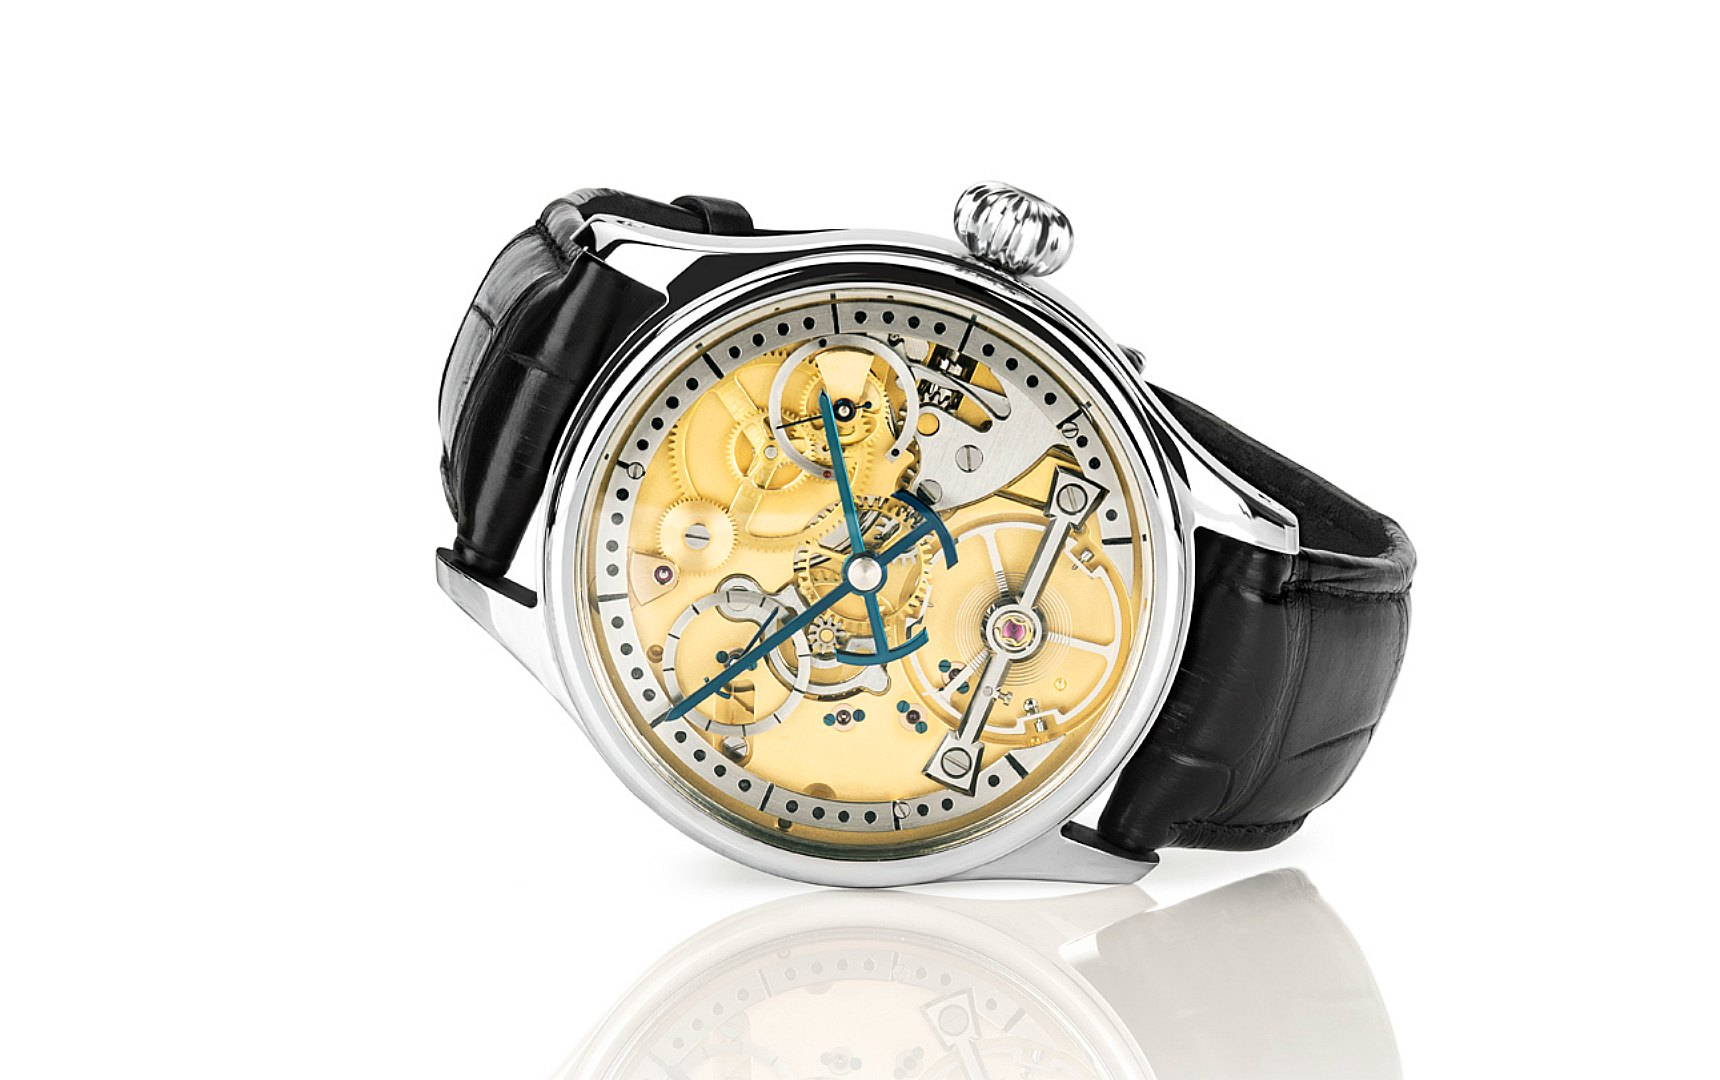 The S1 skeleton watch made in England by Garrick